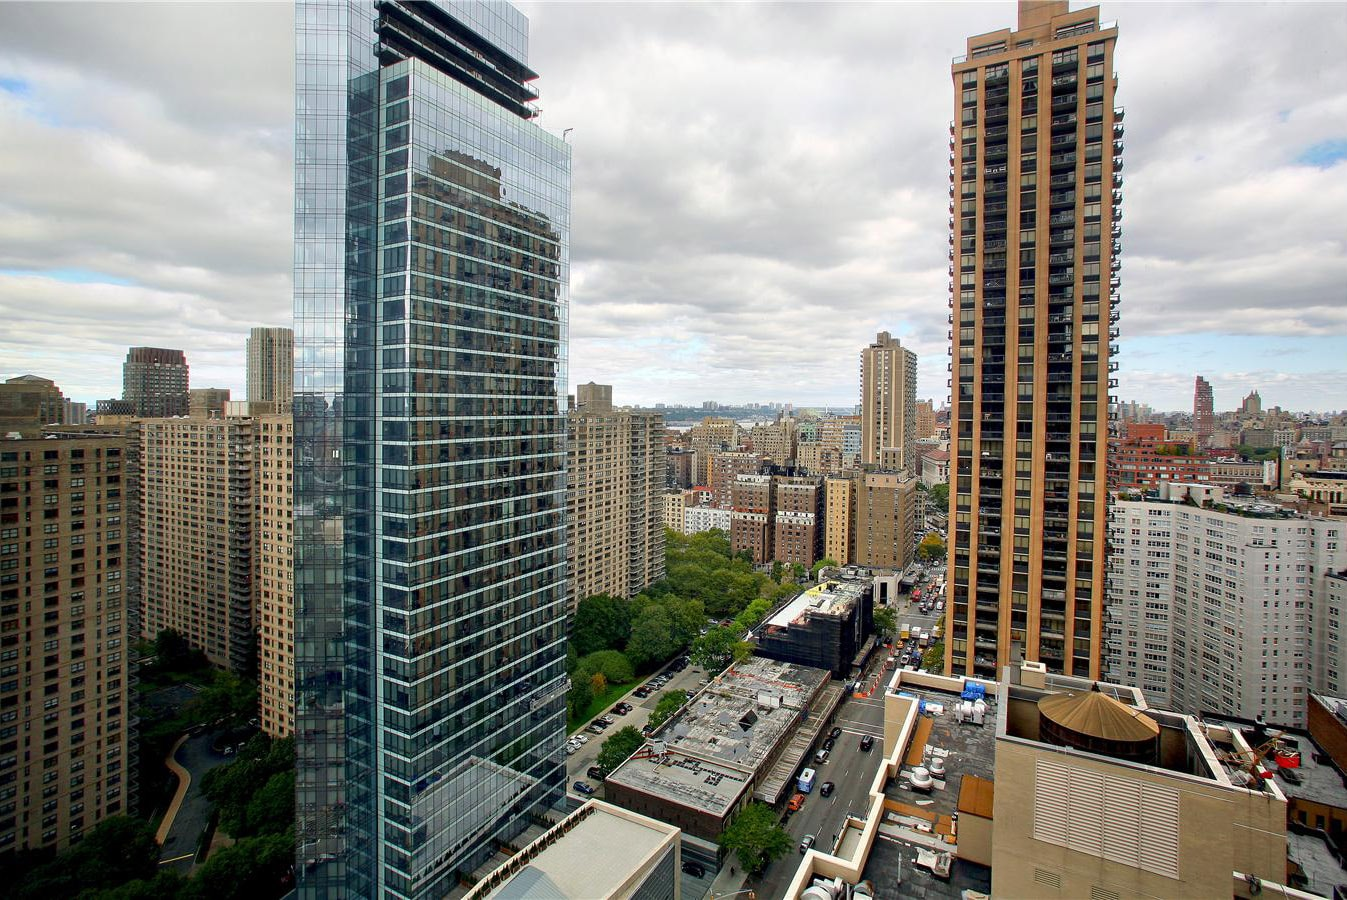 3 Lincoln Center At 160 West 66th Street In Upper West